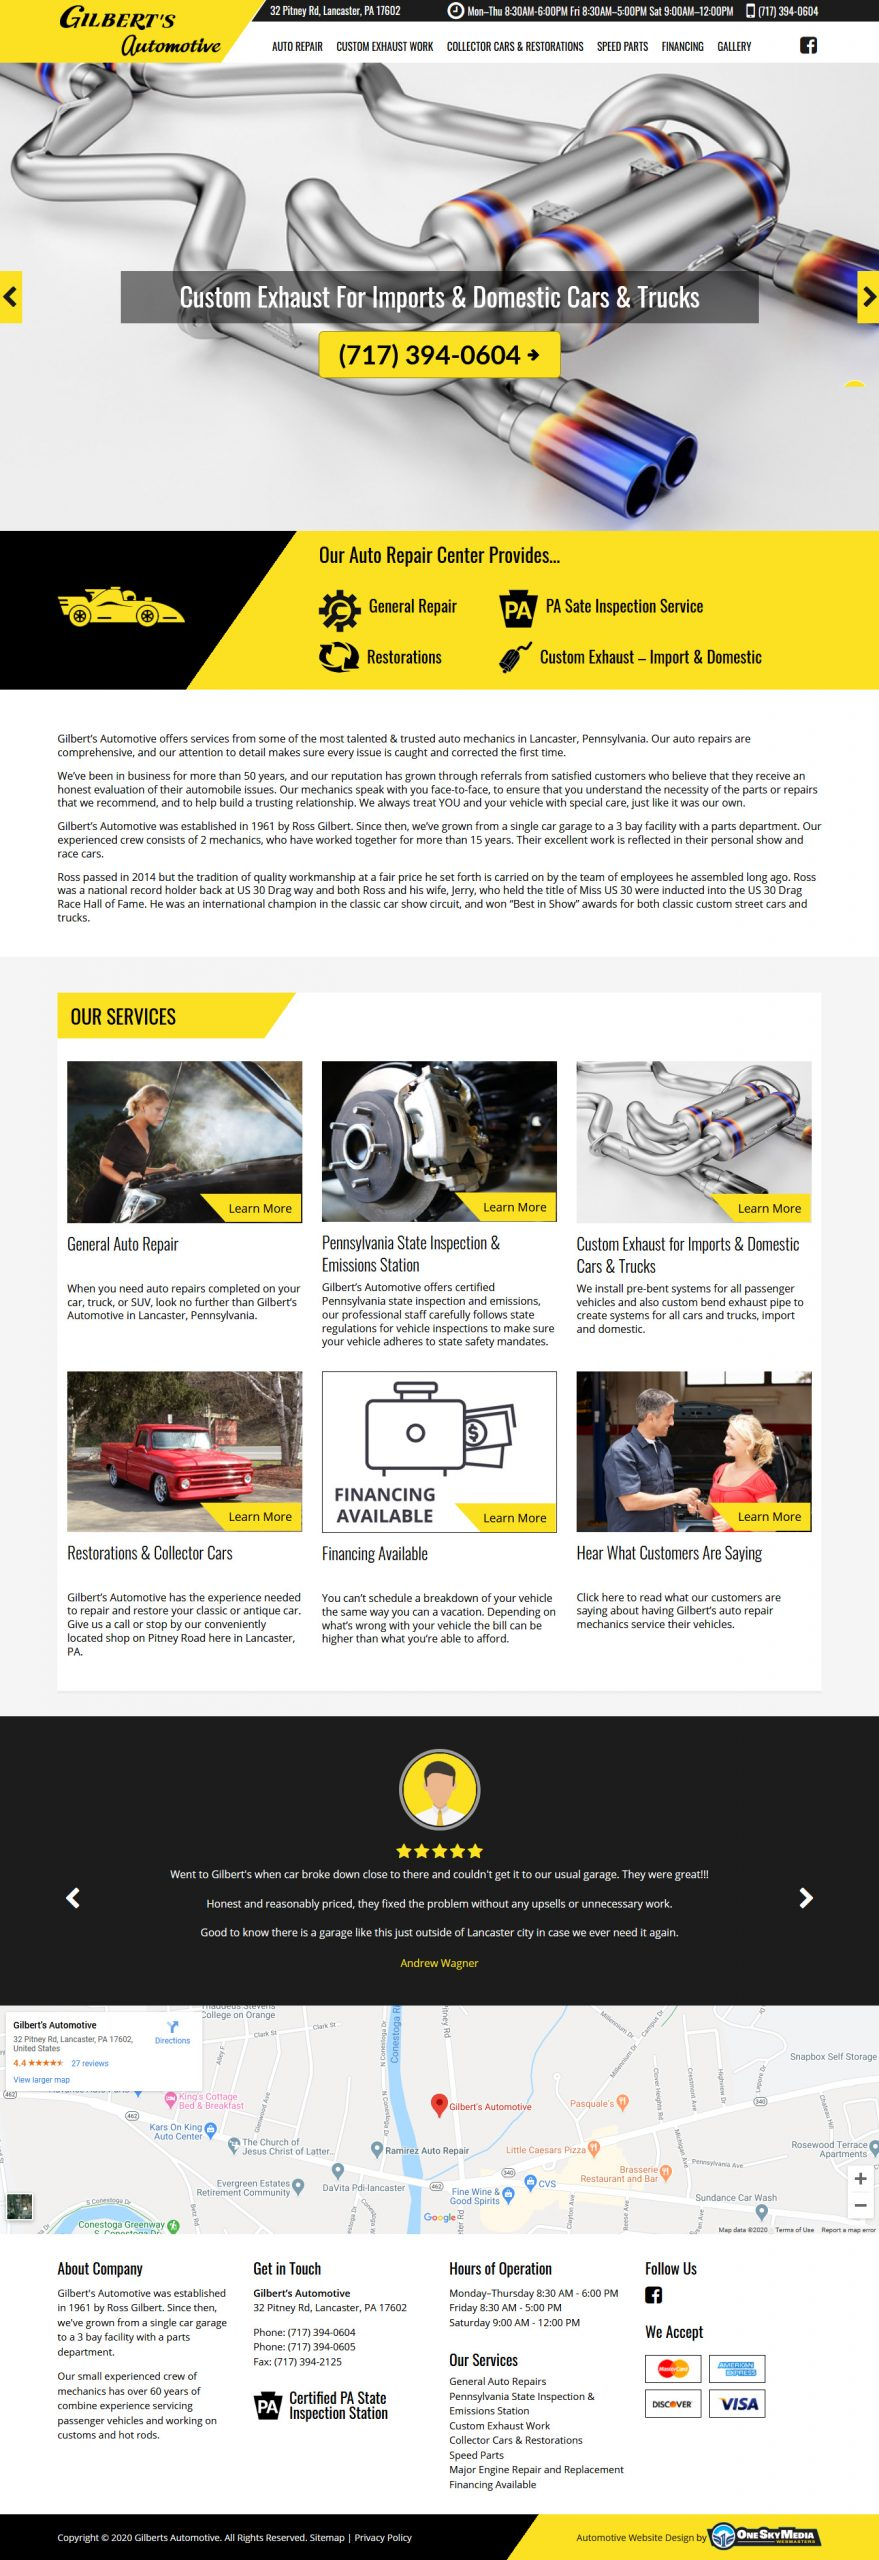 Gilberts Automobile Auto Repair Center Website Design